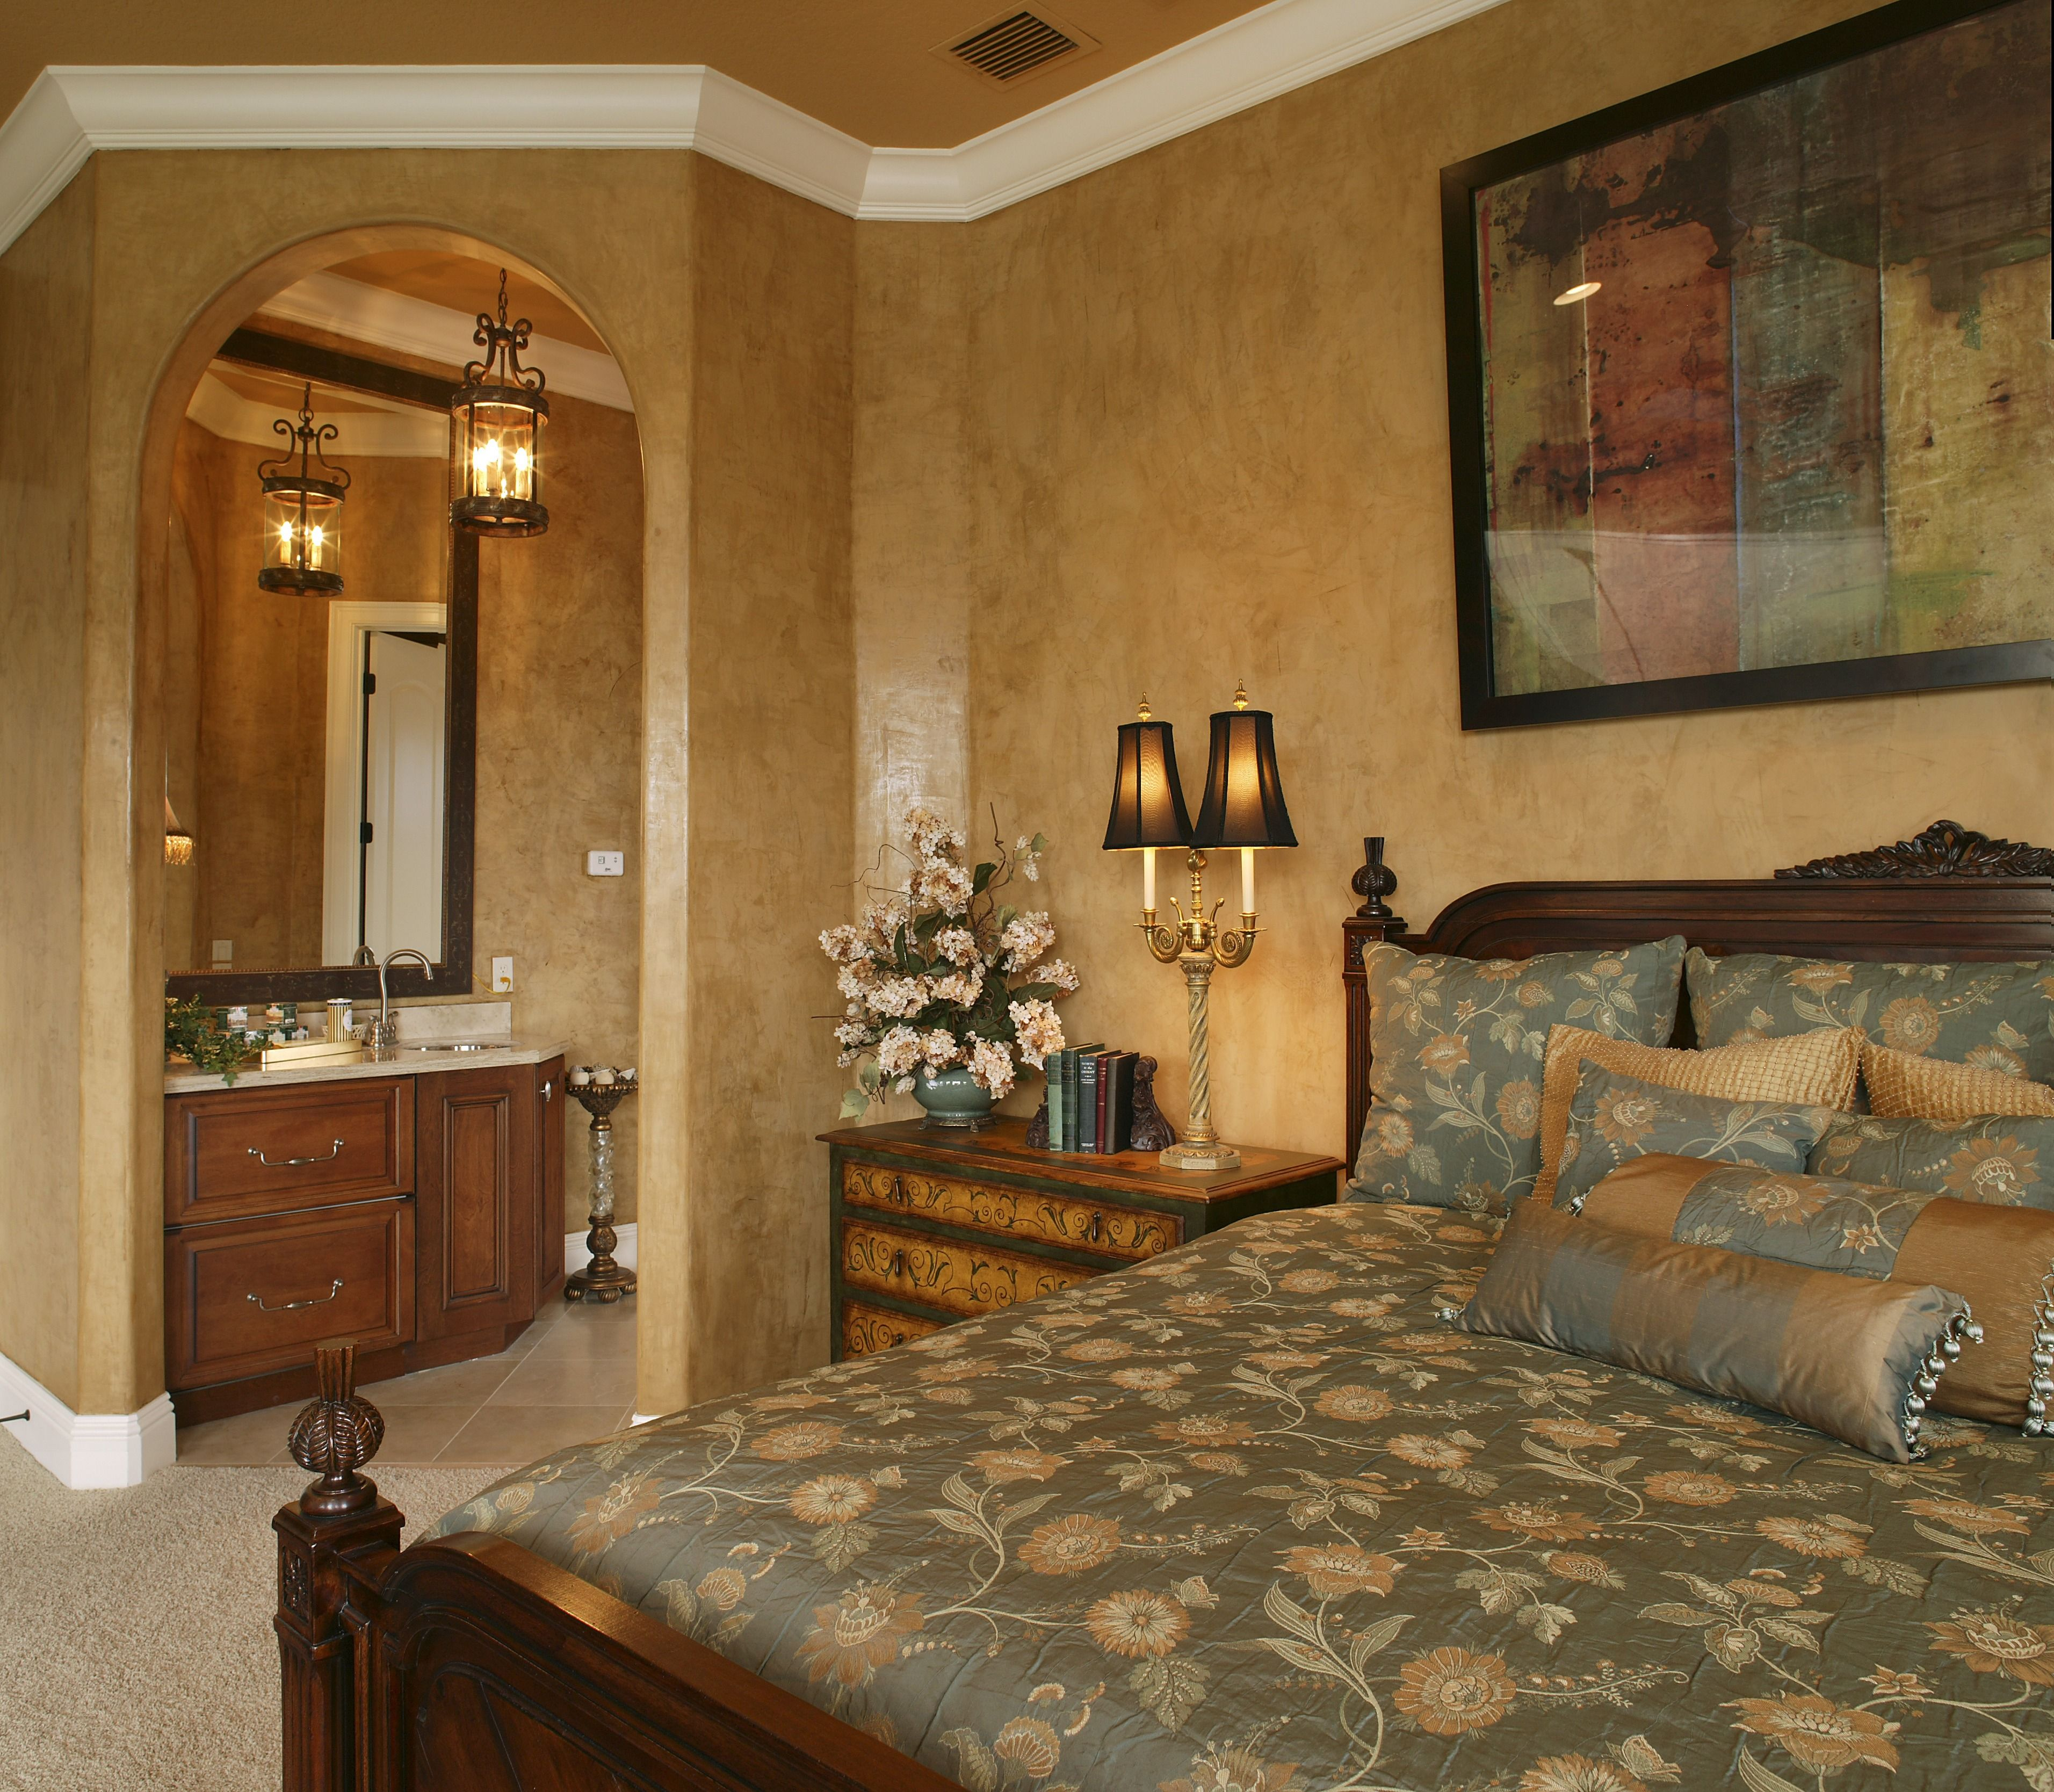 2020 Home Remodeling Costs Average Price To Remodel A